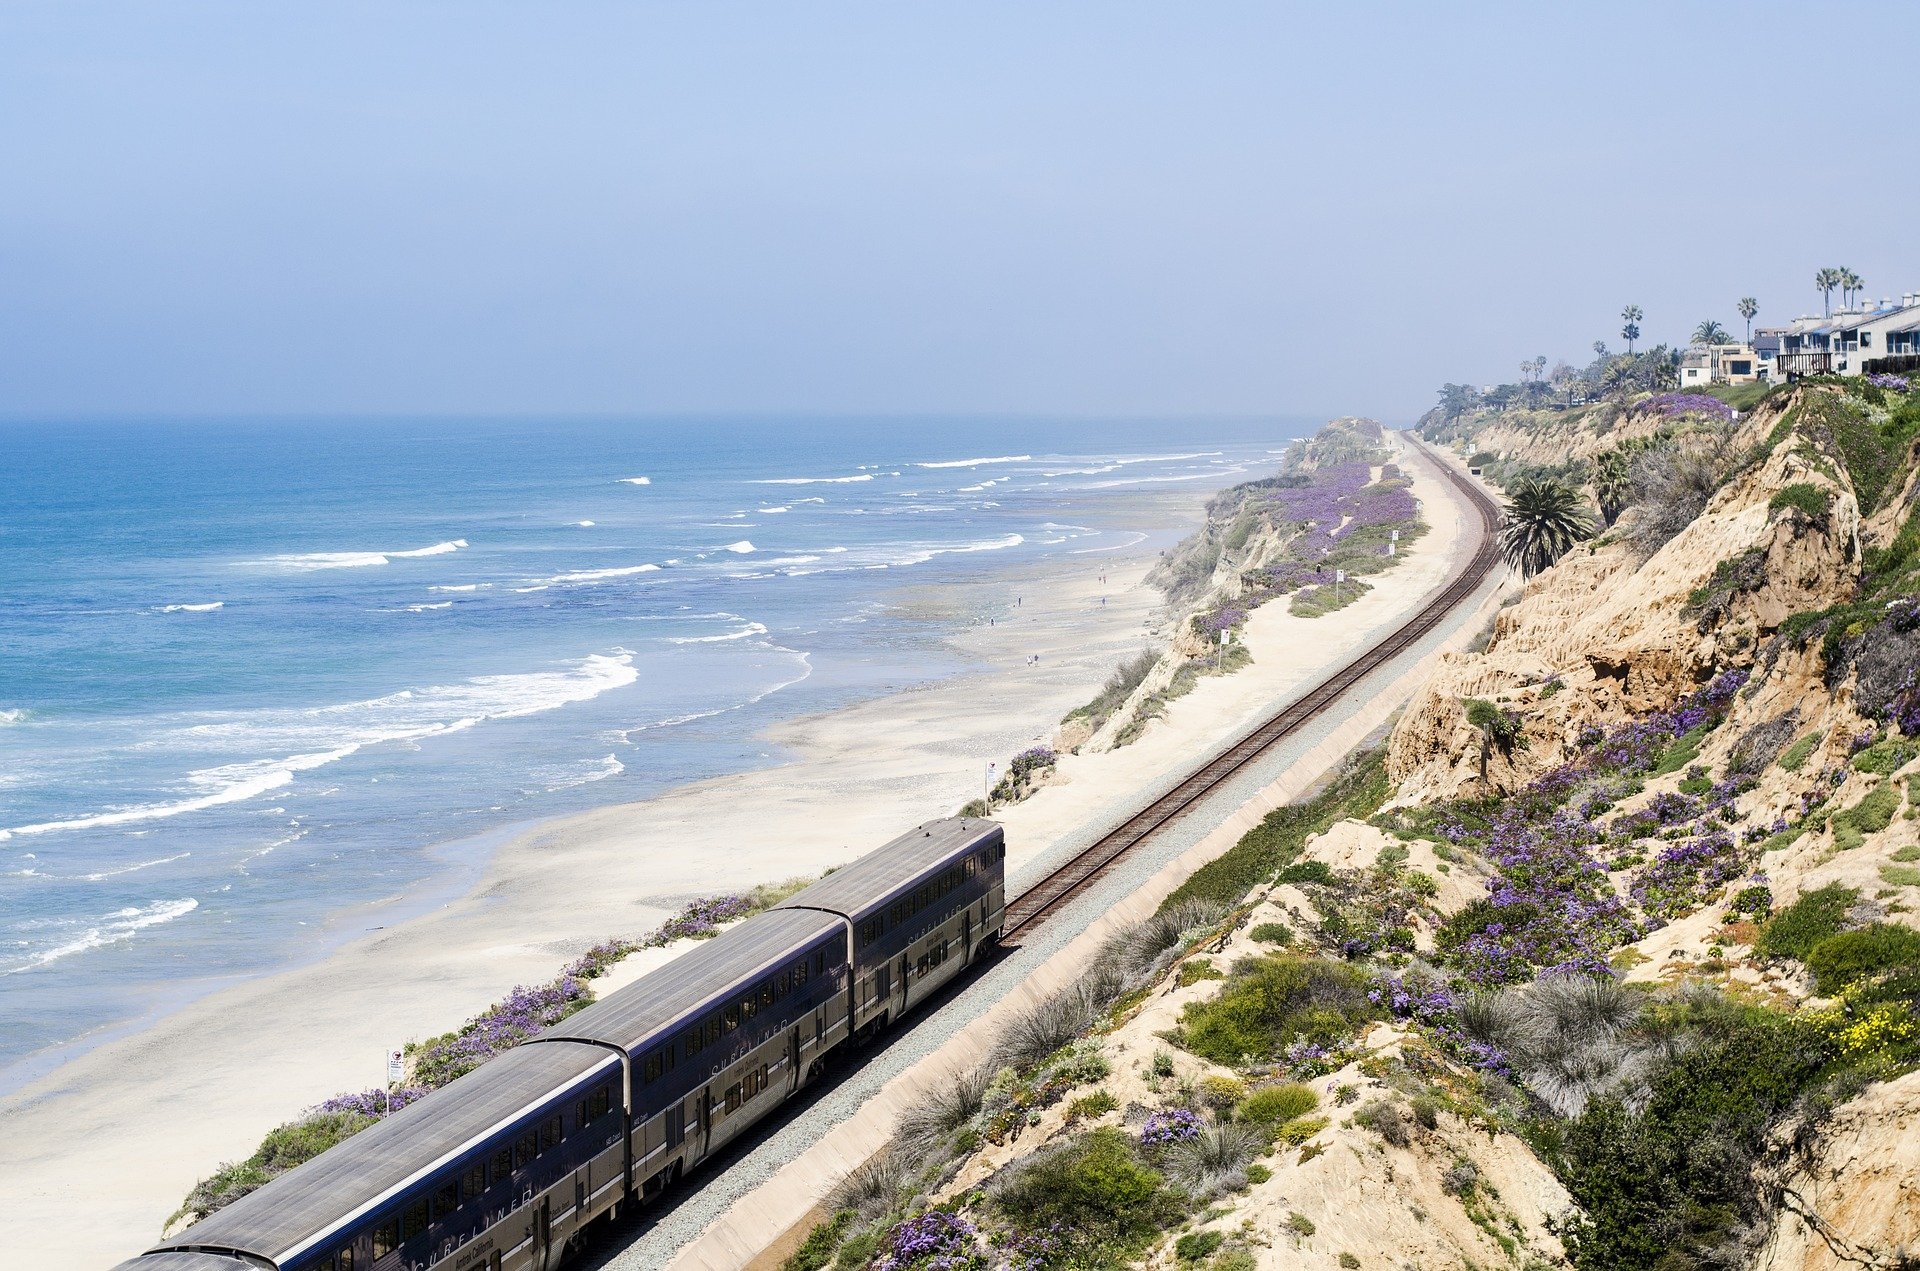 Beachside Railway in Del Mar